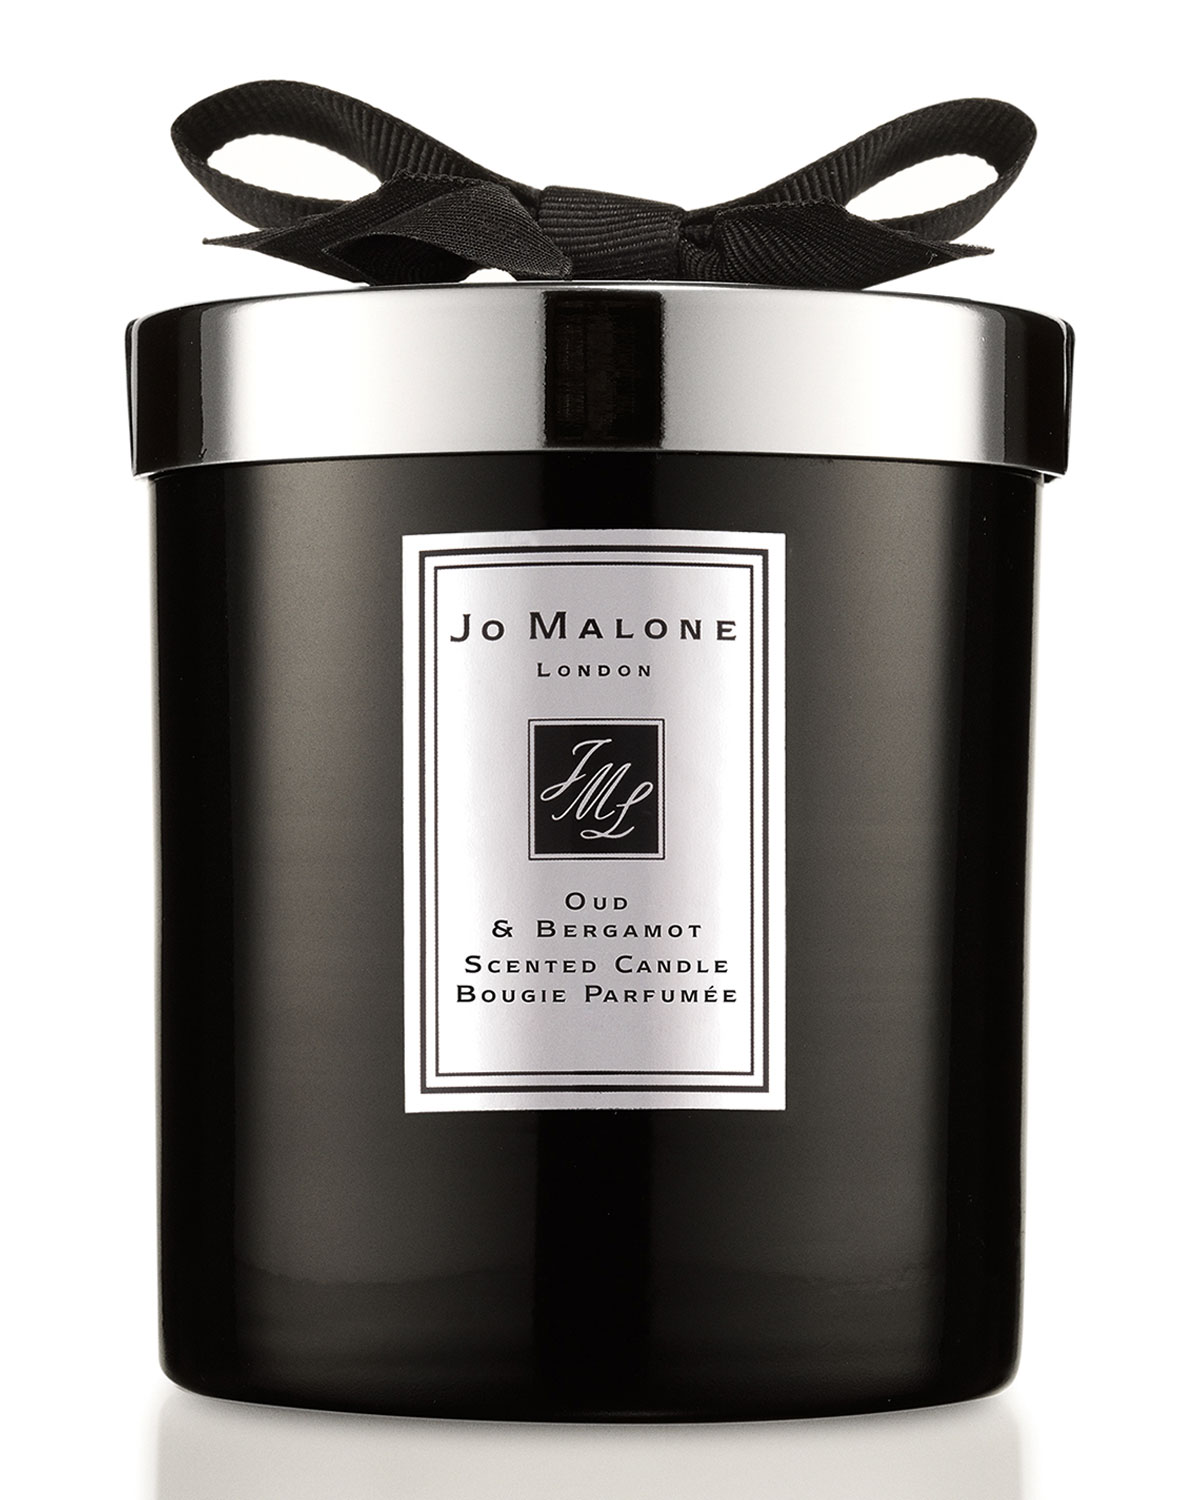 Jo Malone London Oud & Bergamot Home Candle, 7 Oz